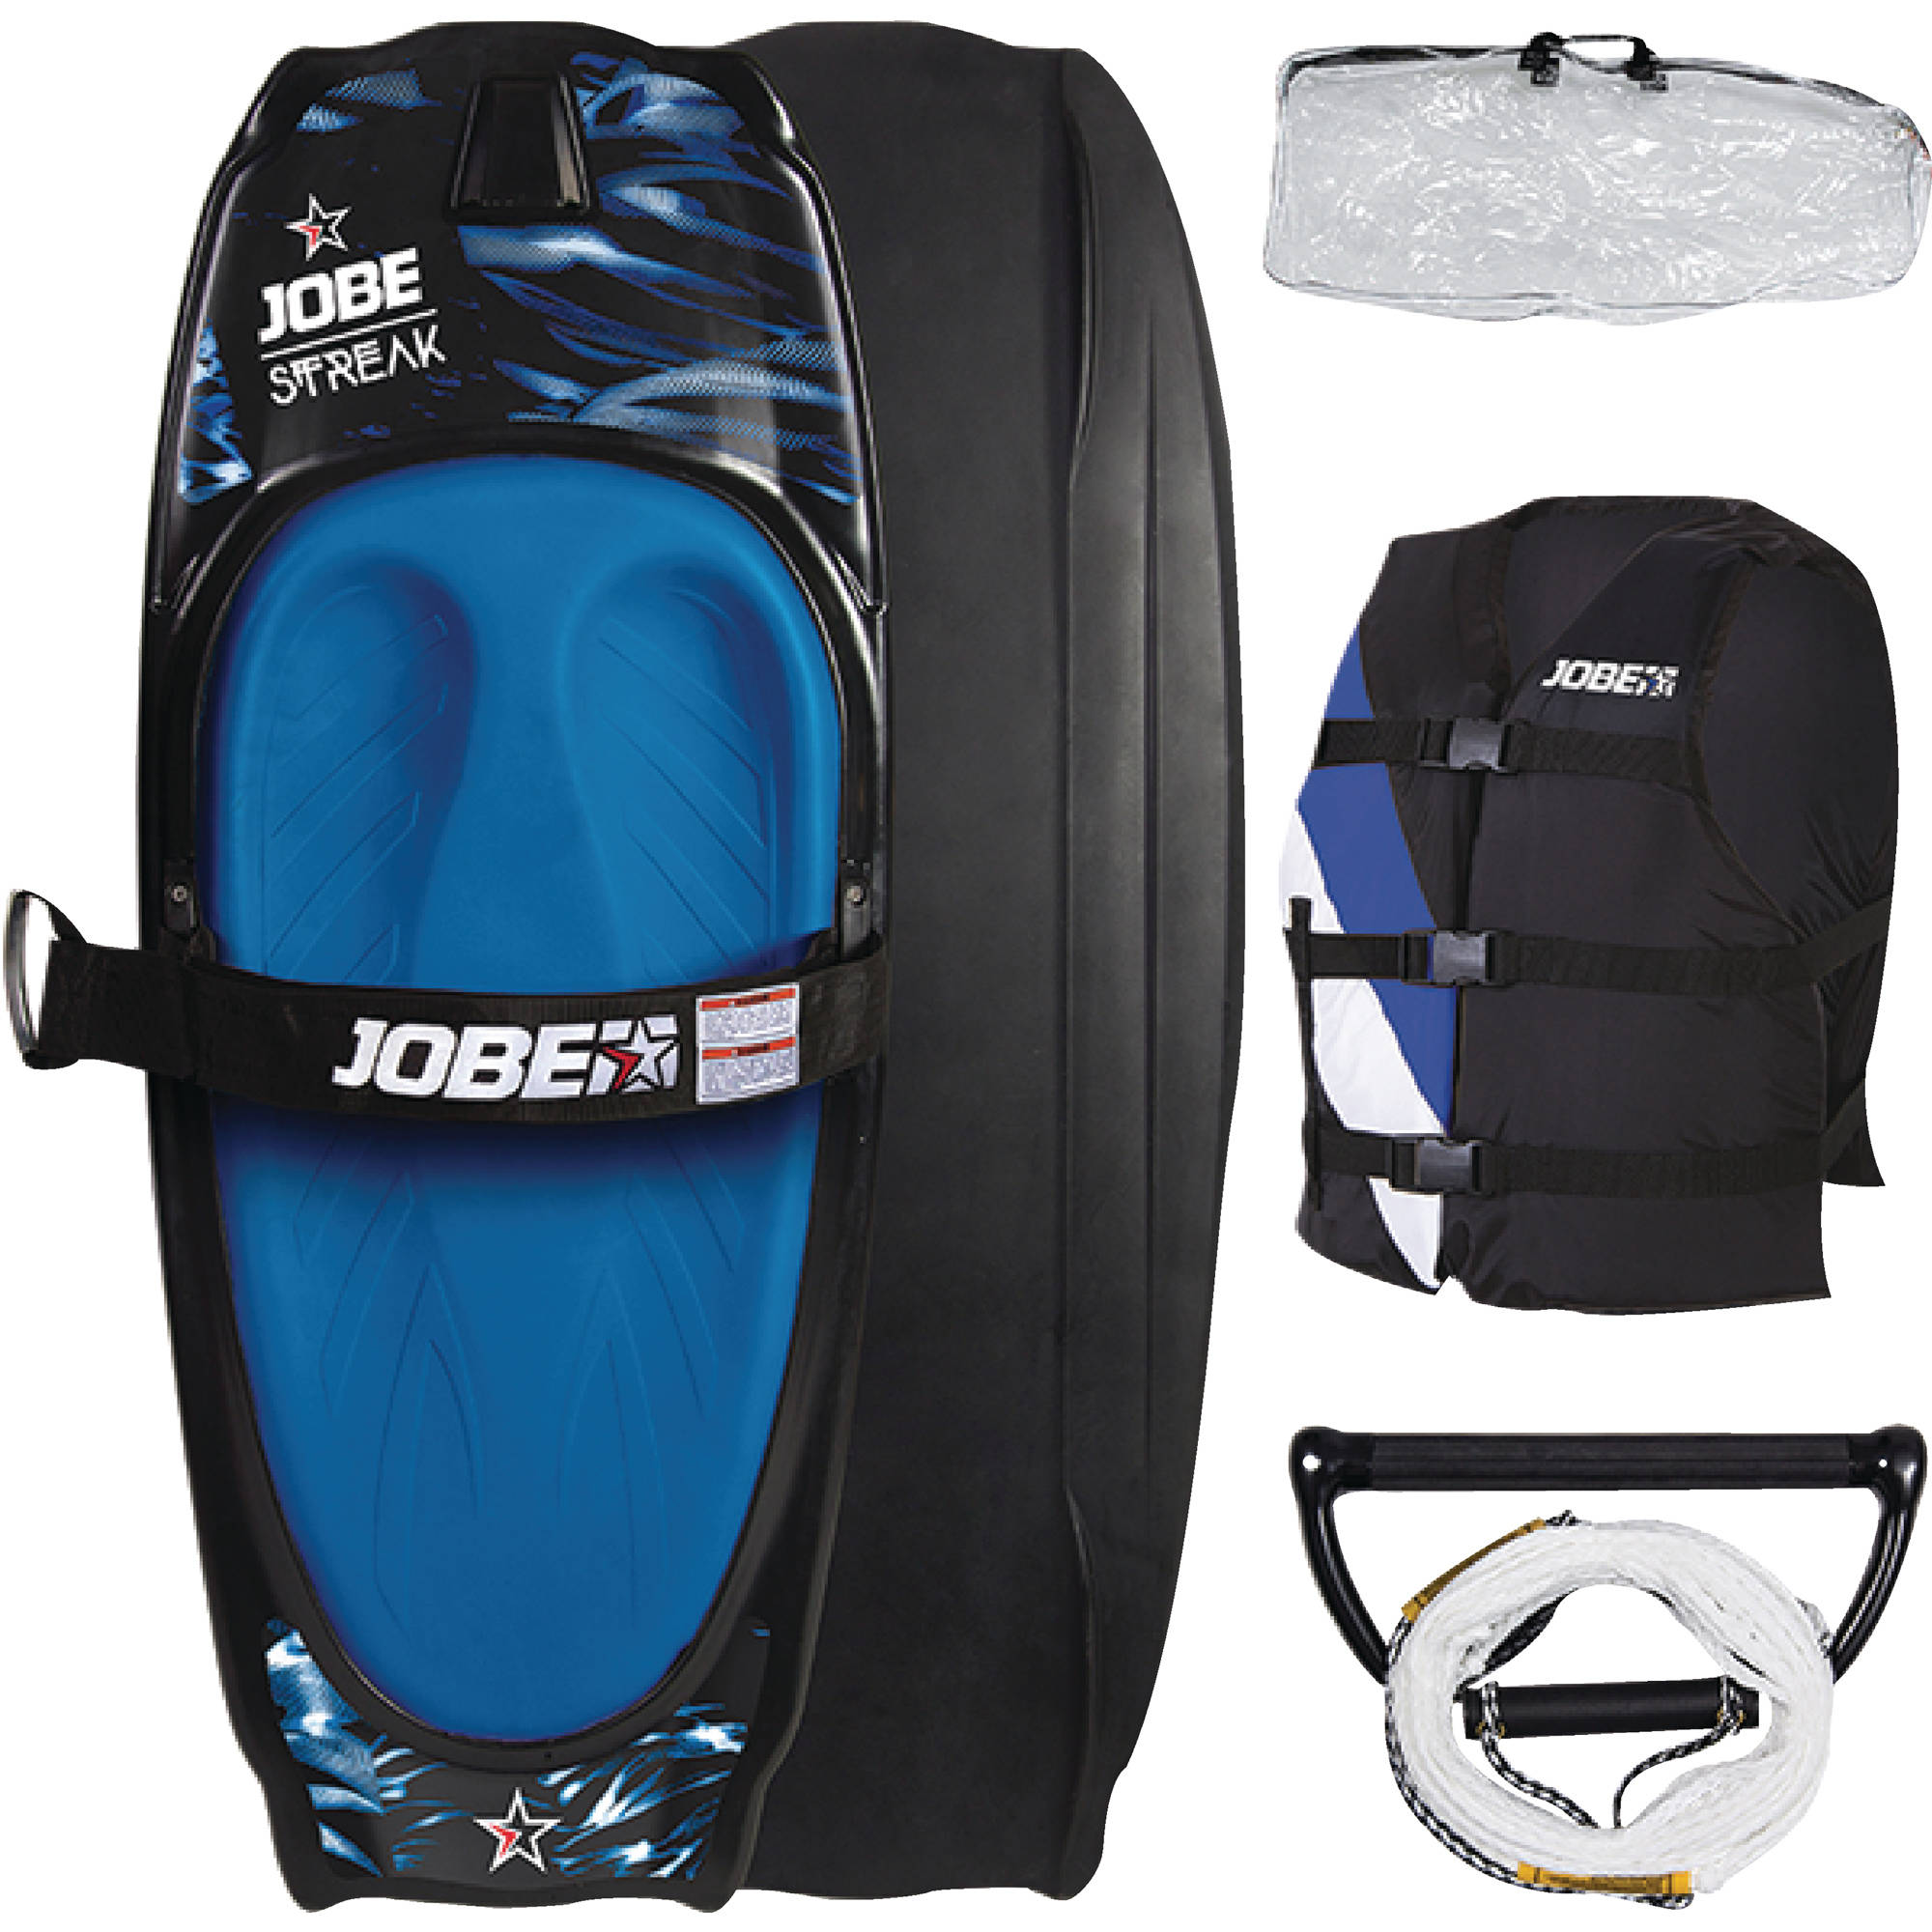 Jobe 258816002 Streaker Kneeboard Package   Includes Vest, Rope, Handle & Bag by Jobe Sport International